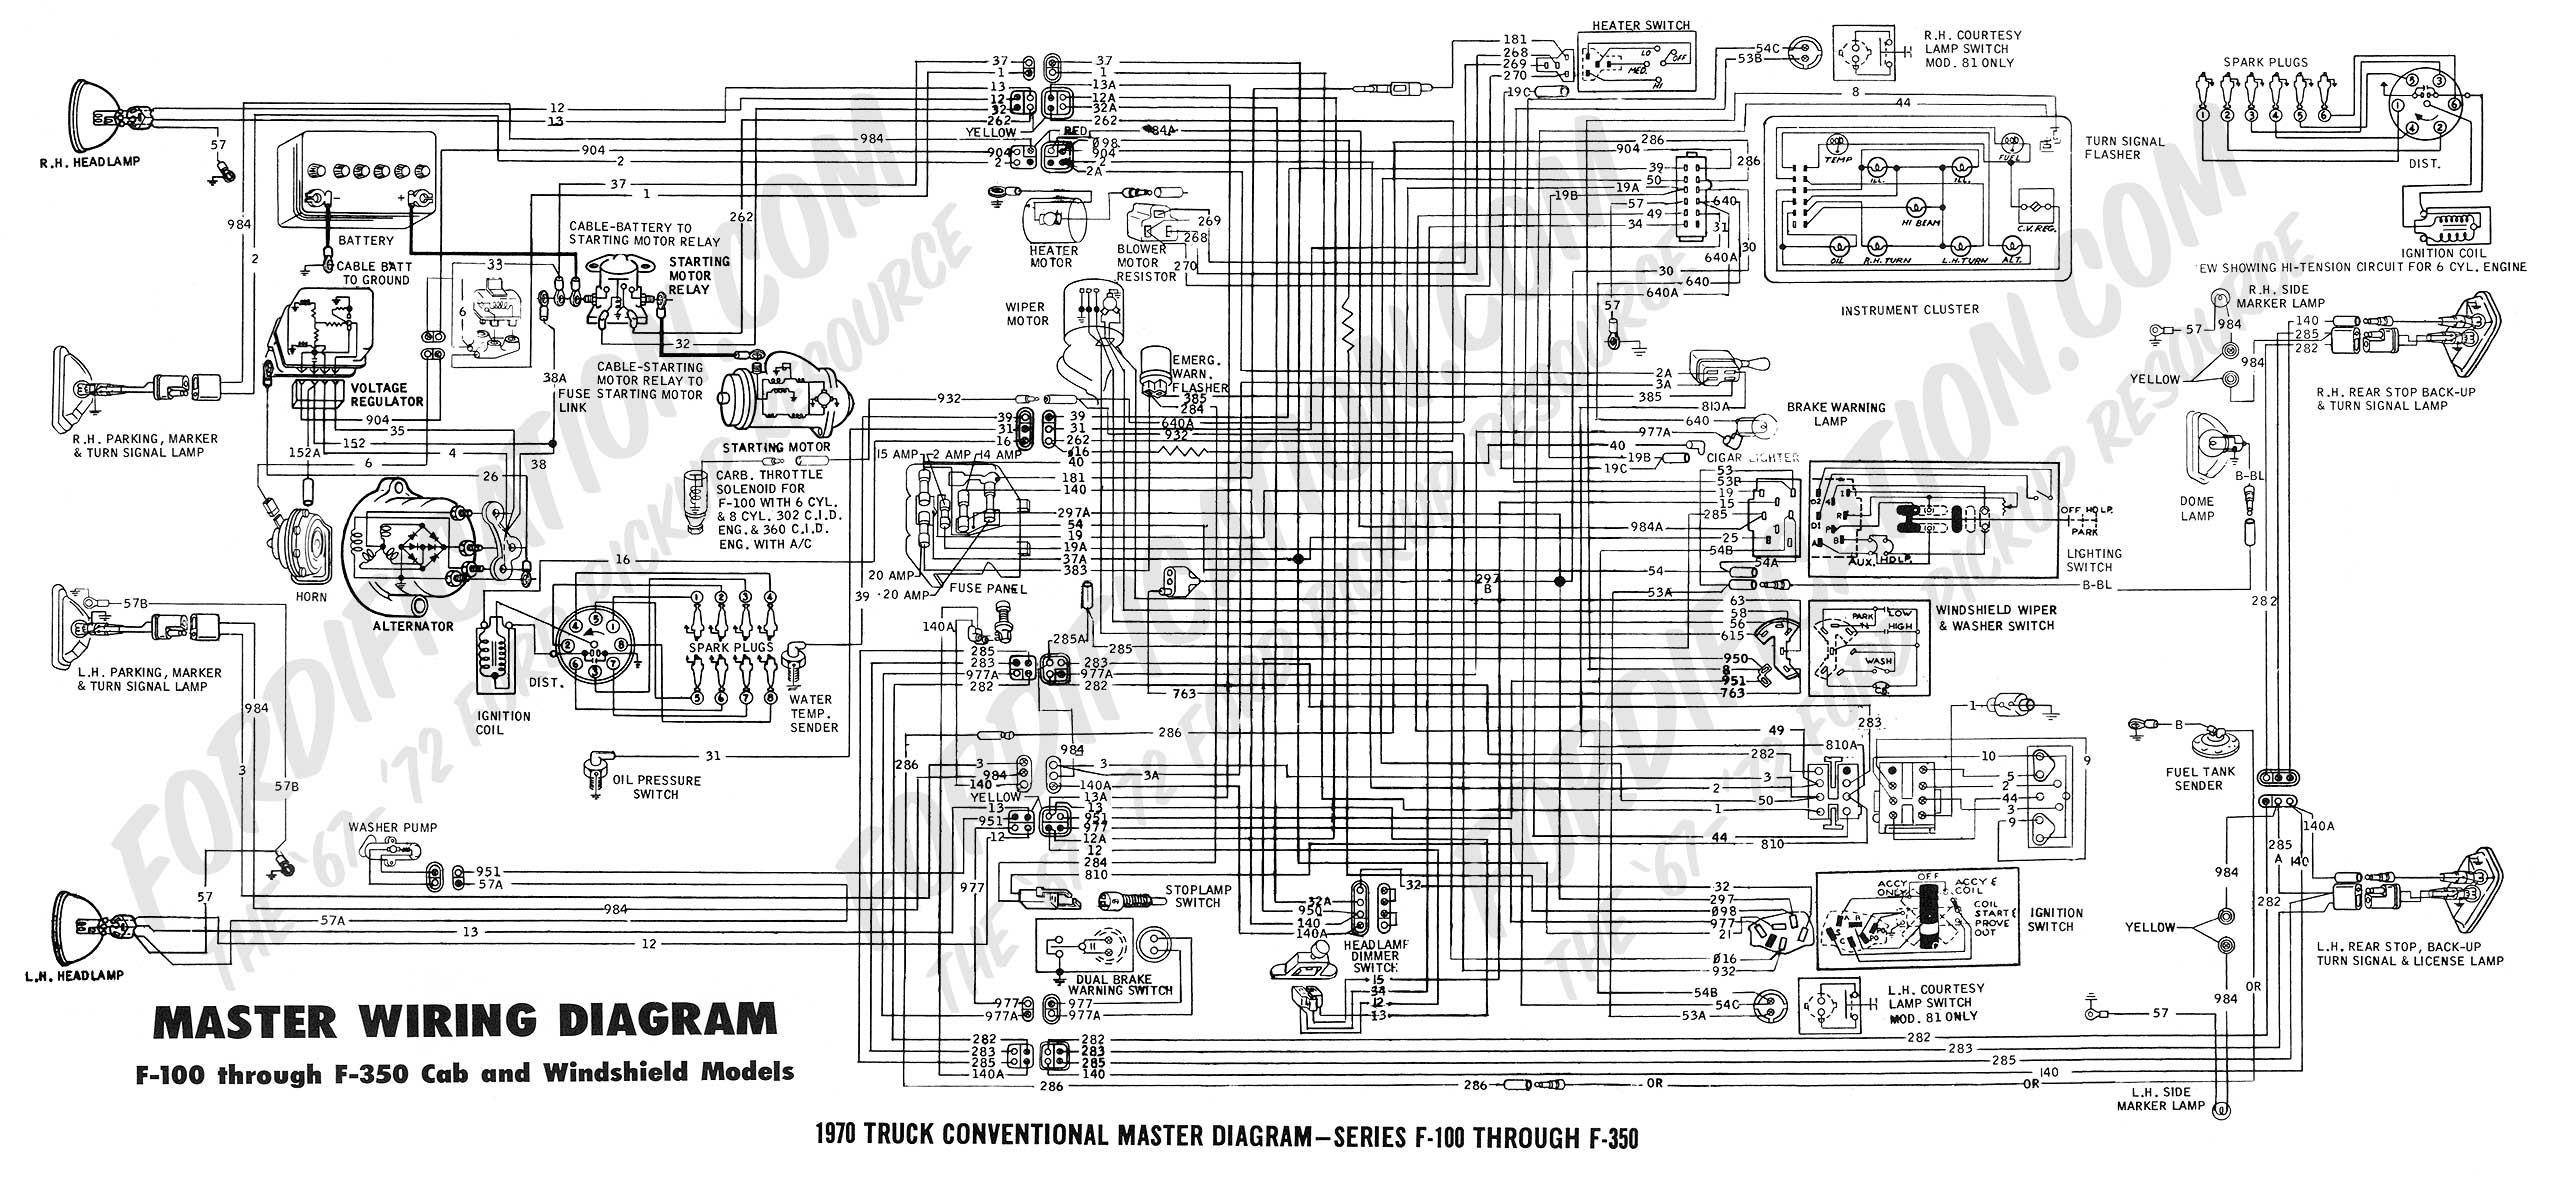 wiring diagram 70_master ford truck technical drawings and schematics section h wiring 1999 Ford Expedition Problems at reclaimingppi.co